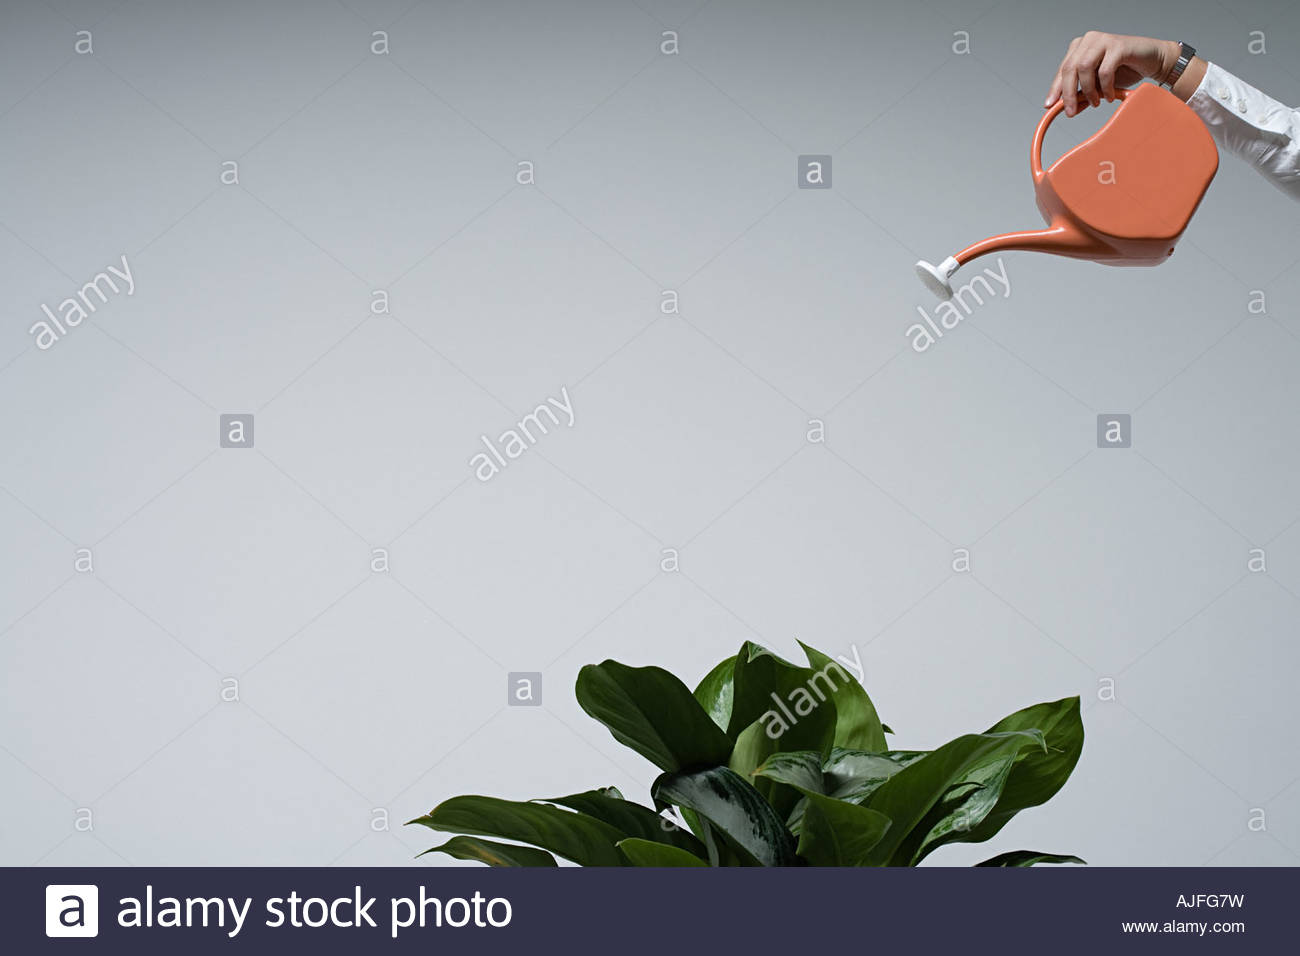 A person watering a plant - Stock Image